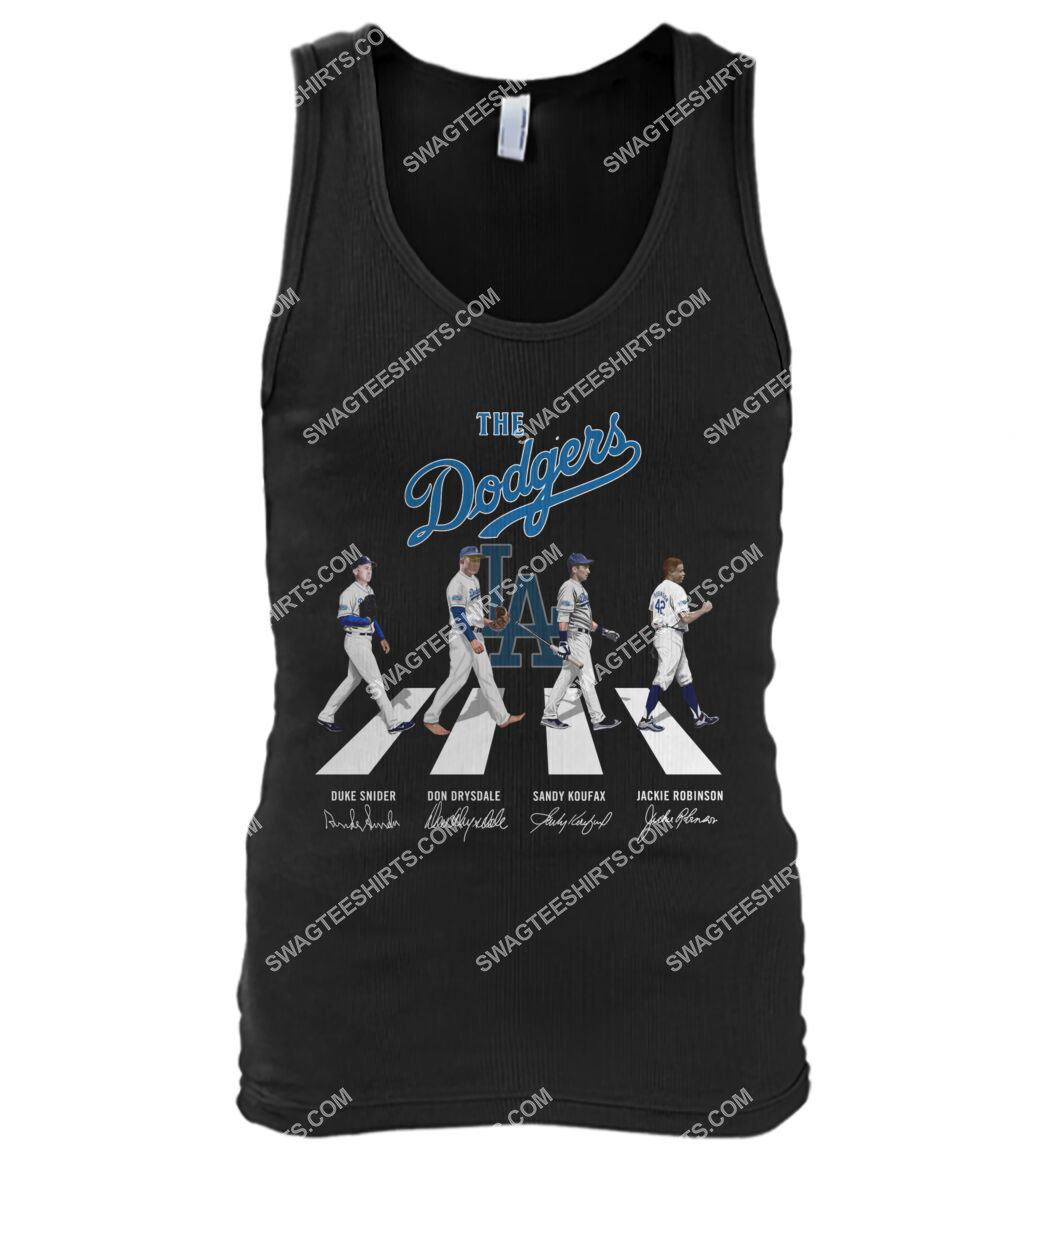 abbey road the los angeles dodgers signatures tank top 1